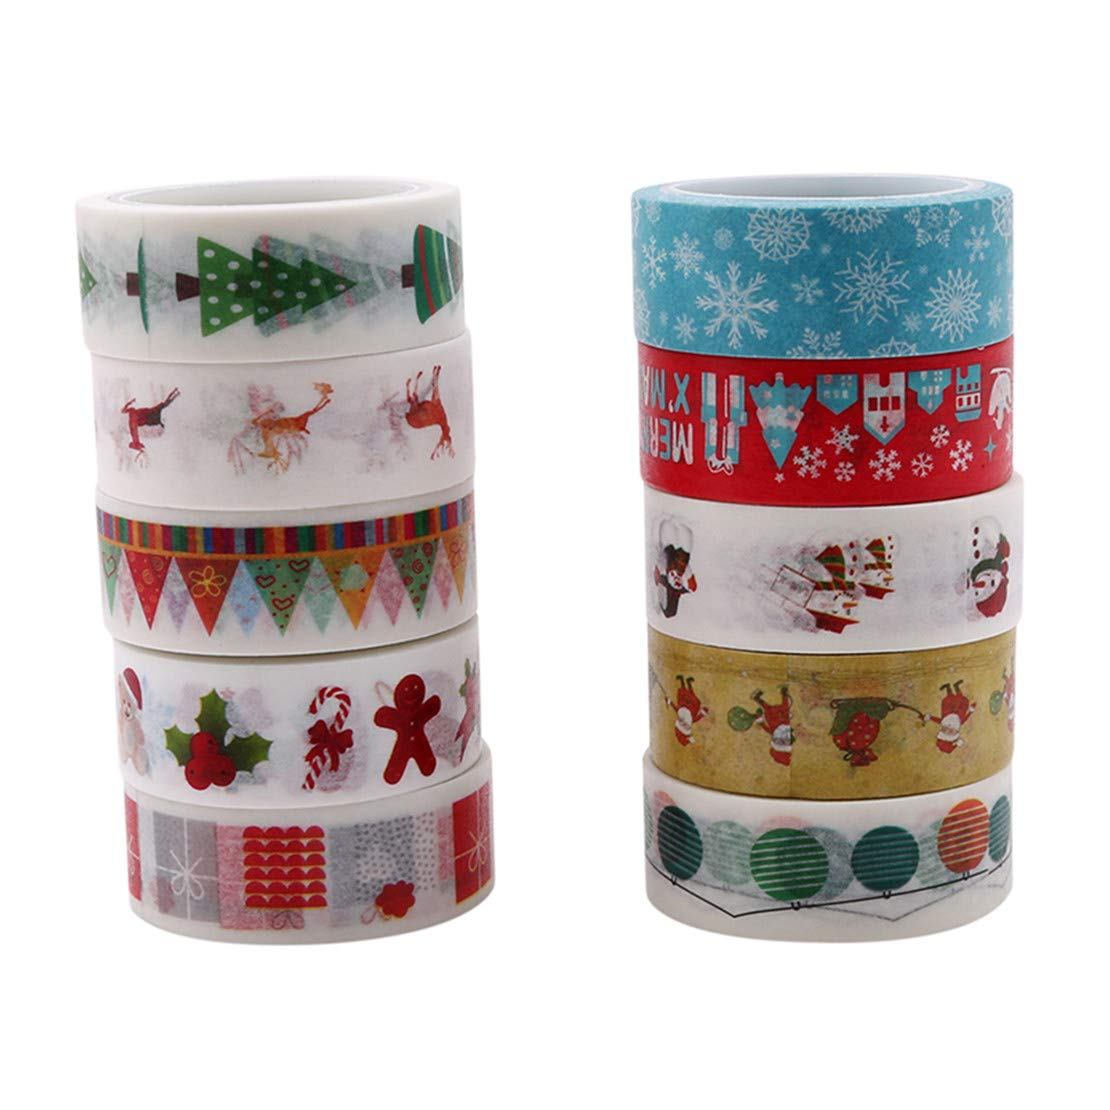 Winwinfly 10Pcs / pack Christmas Decorative Washi Tape DIY Adhesive Scrapbooking Stickers(Style 5